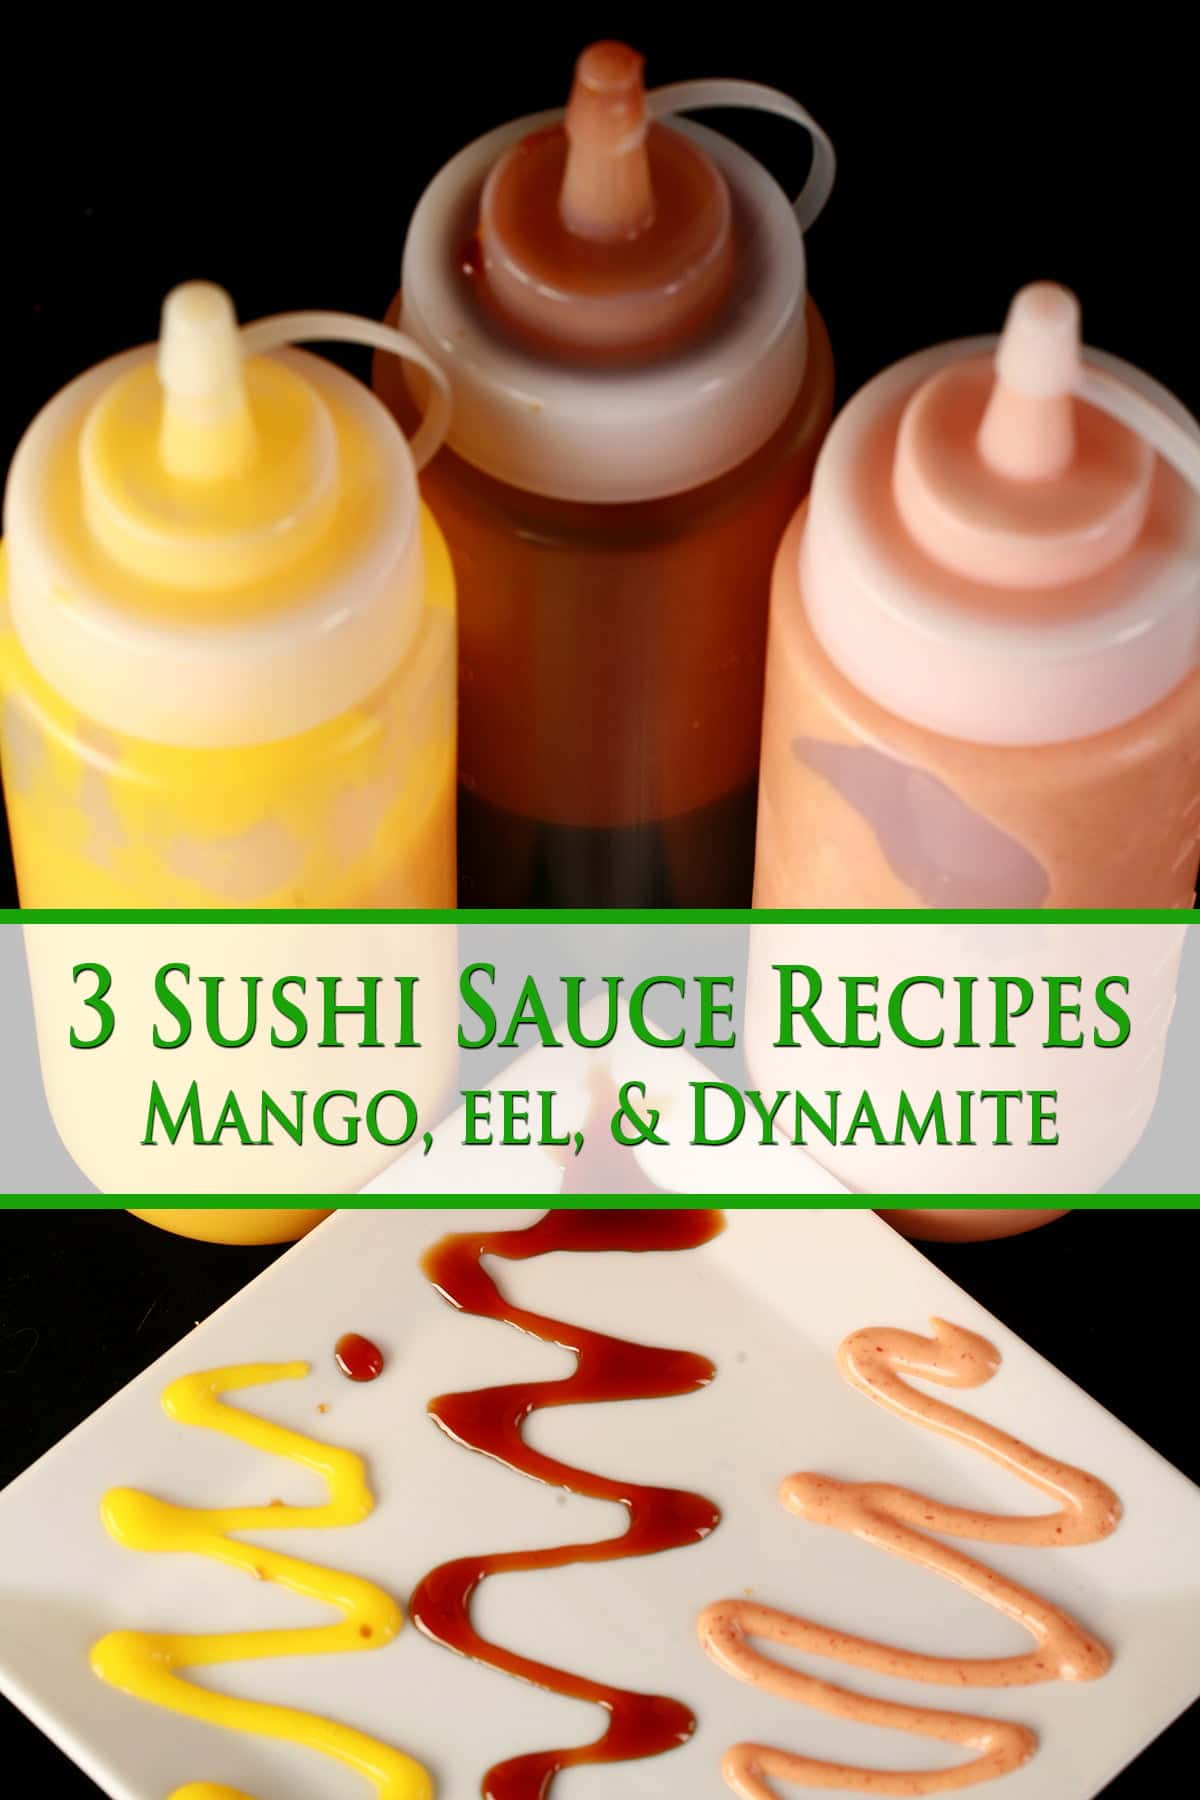 Close up image of 3 bottles of sauce - one yellow, one brown, and one pink. In front of the bottles is a plate of sushi, with the 3 colours of sauce drizzled across the plate in squiggles